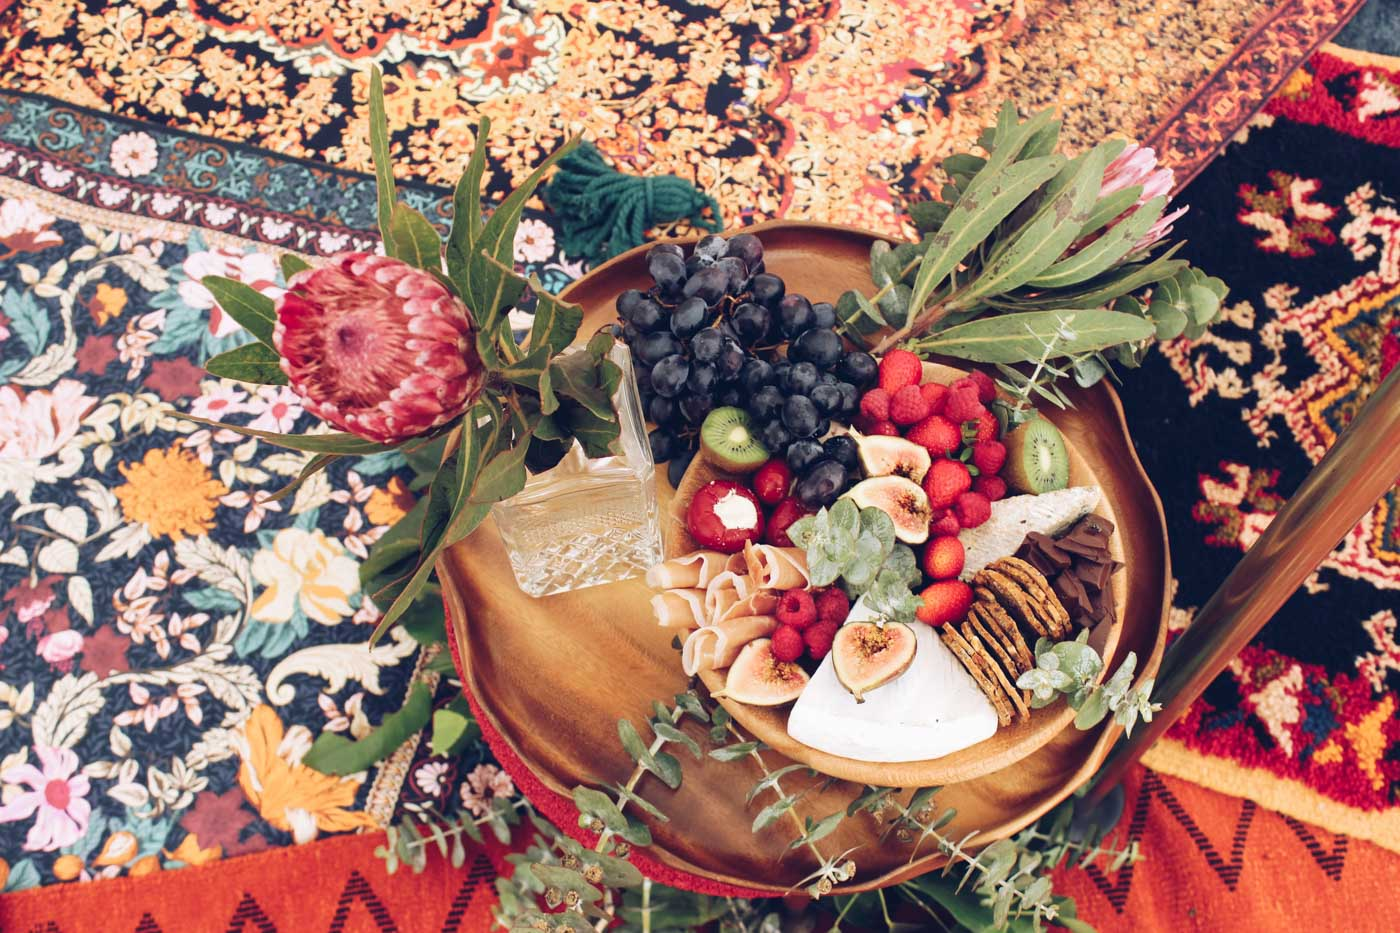 the_Collection_co_grazing_table_cairns_weddings_catering_grazing_platter_hire_pop_up_picnic_bell_tent_event_hire_styling-44 copy-2.jpg